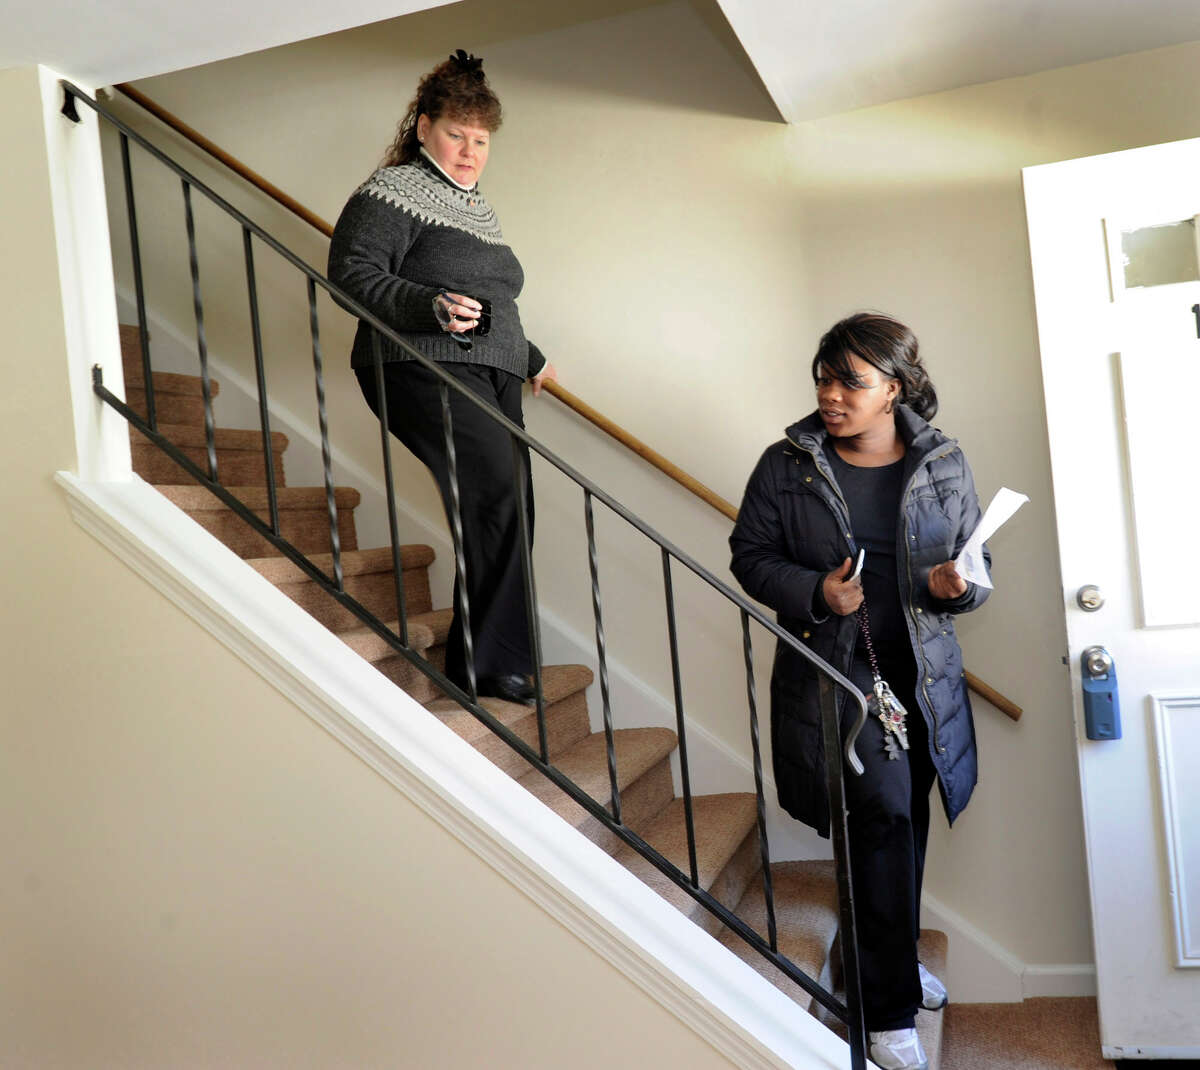 Carolyn Ridenour, 47, left, of Prudential Connecticut Realty, shows Ranisha Green, 25, of Danbury, an apartment for rent at Racing Brook Meadow 1 in Danbury, Conn. Tuesday, March 5, 2013